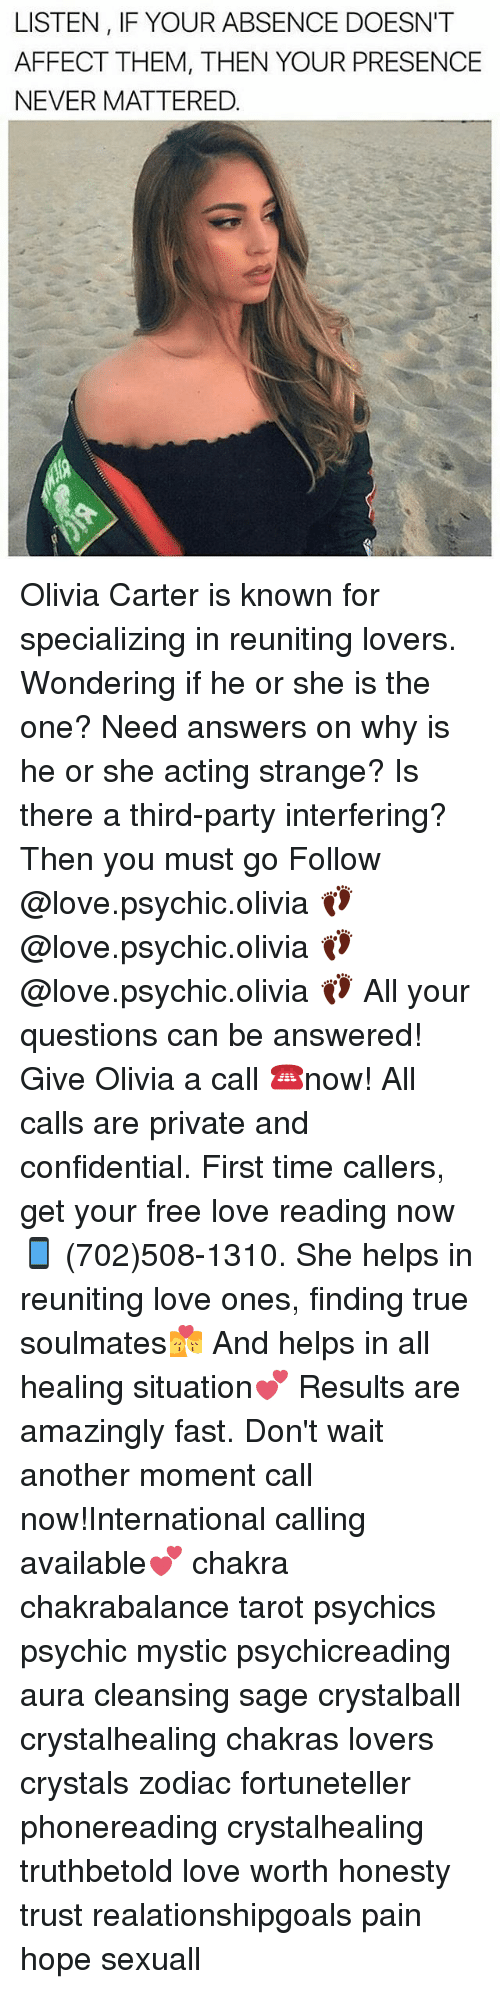 affectation: LISTEN, IF YOUR ABSENCE DOESN'T  AFFECT THEM, THEN YOUR PRESENCE  NEVER MATTERED. Olivia Carter is known for specializing in reuniting lovers. Wondering if he or she is the one? Need answers on why is he or she acting strange? Is there a third-party interfering? Then you must go Follow @love.psychic.olivia 👣 @love.psychic.olivia 👣 @love.psychic.olivia 👣 All your questions can be answered! Give Olivia a call ☎️now! All calls are private and confidential. First time callers, get your free love reading now 📱 (702)508-1310. She helps in reuniting love ones, finding true soulmates💏 And helps in all healing situation💕 Results are amazingly fast. Don't wait another moment call now!International calling available💕 chakra chakrabalance tarot psychics psychic mystic psychicreading aura cleansing sage crystalball crystalhealing chakras lovers crystals zodiac fortuneteller phonereading crystalhealing truthbetold love worth honesty trust realationshipgoals pain hope sexuall